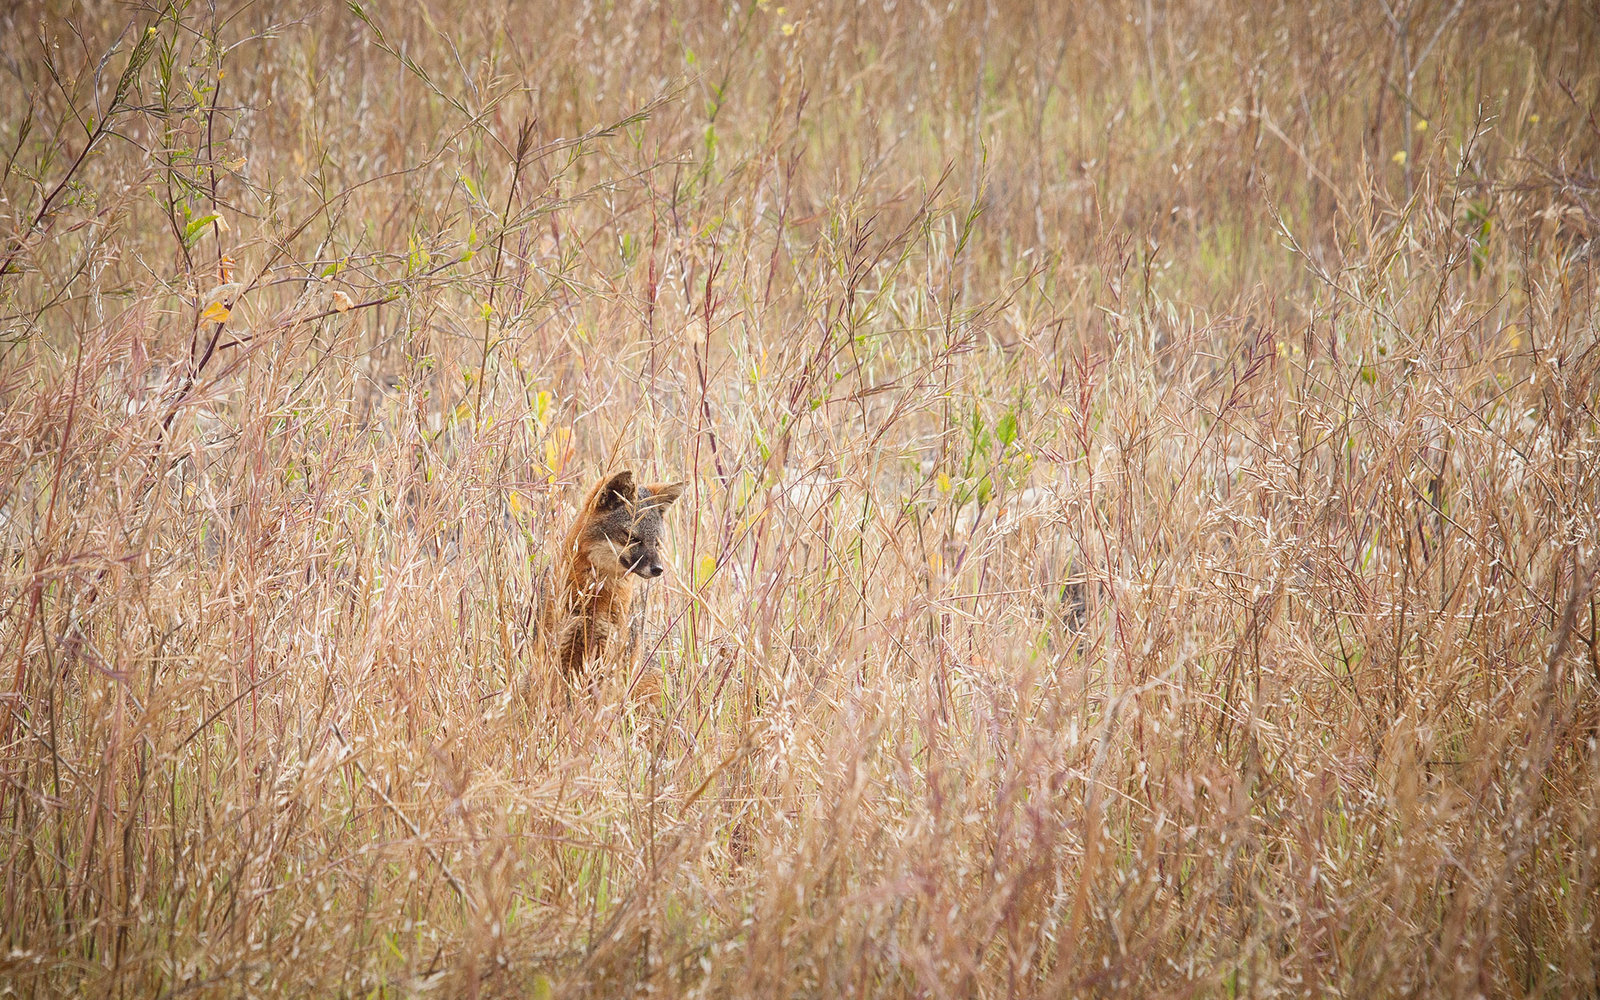 Santa Cruz Island fox (Urocyon littoralis santacruzae) in tall grass